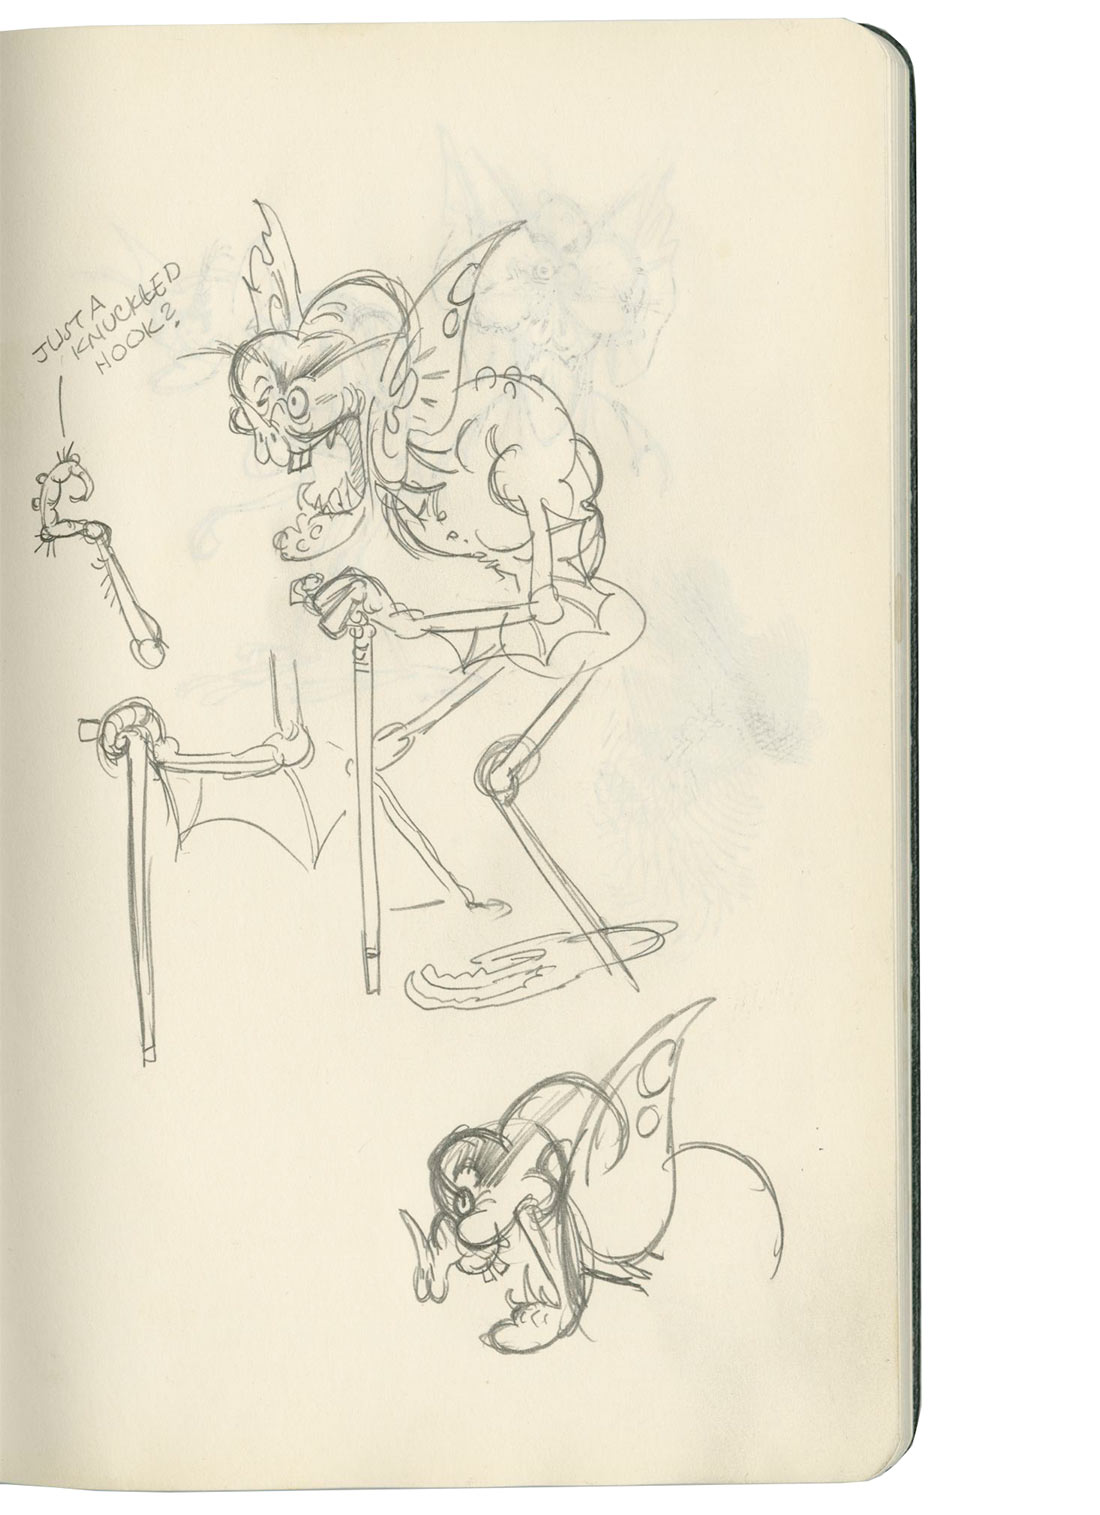 Character concepts for Bela by Stephen DeStefano.